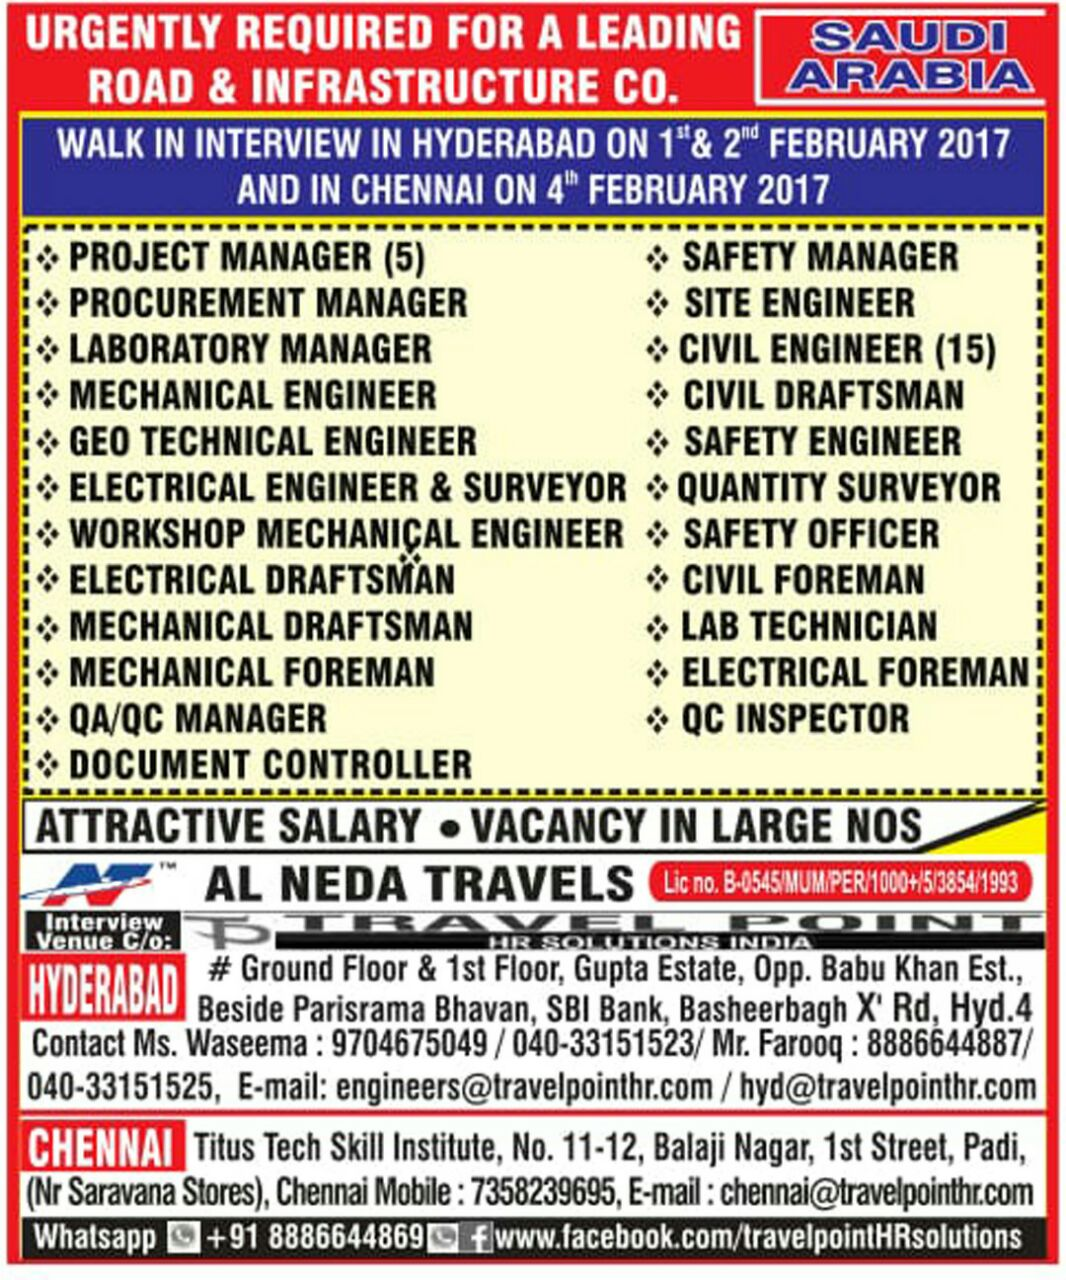 safety officer Find safety officer jobs in saudi arabia at naukrigulfcom search & apply to safety officer vacancies in saudi arabia find job opportunities in top companies.